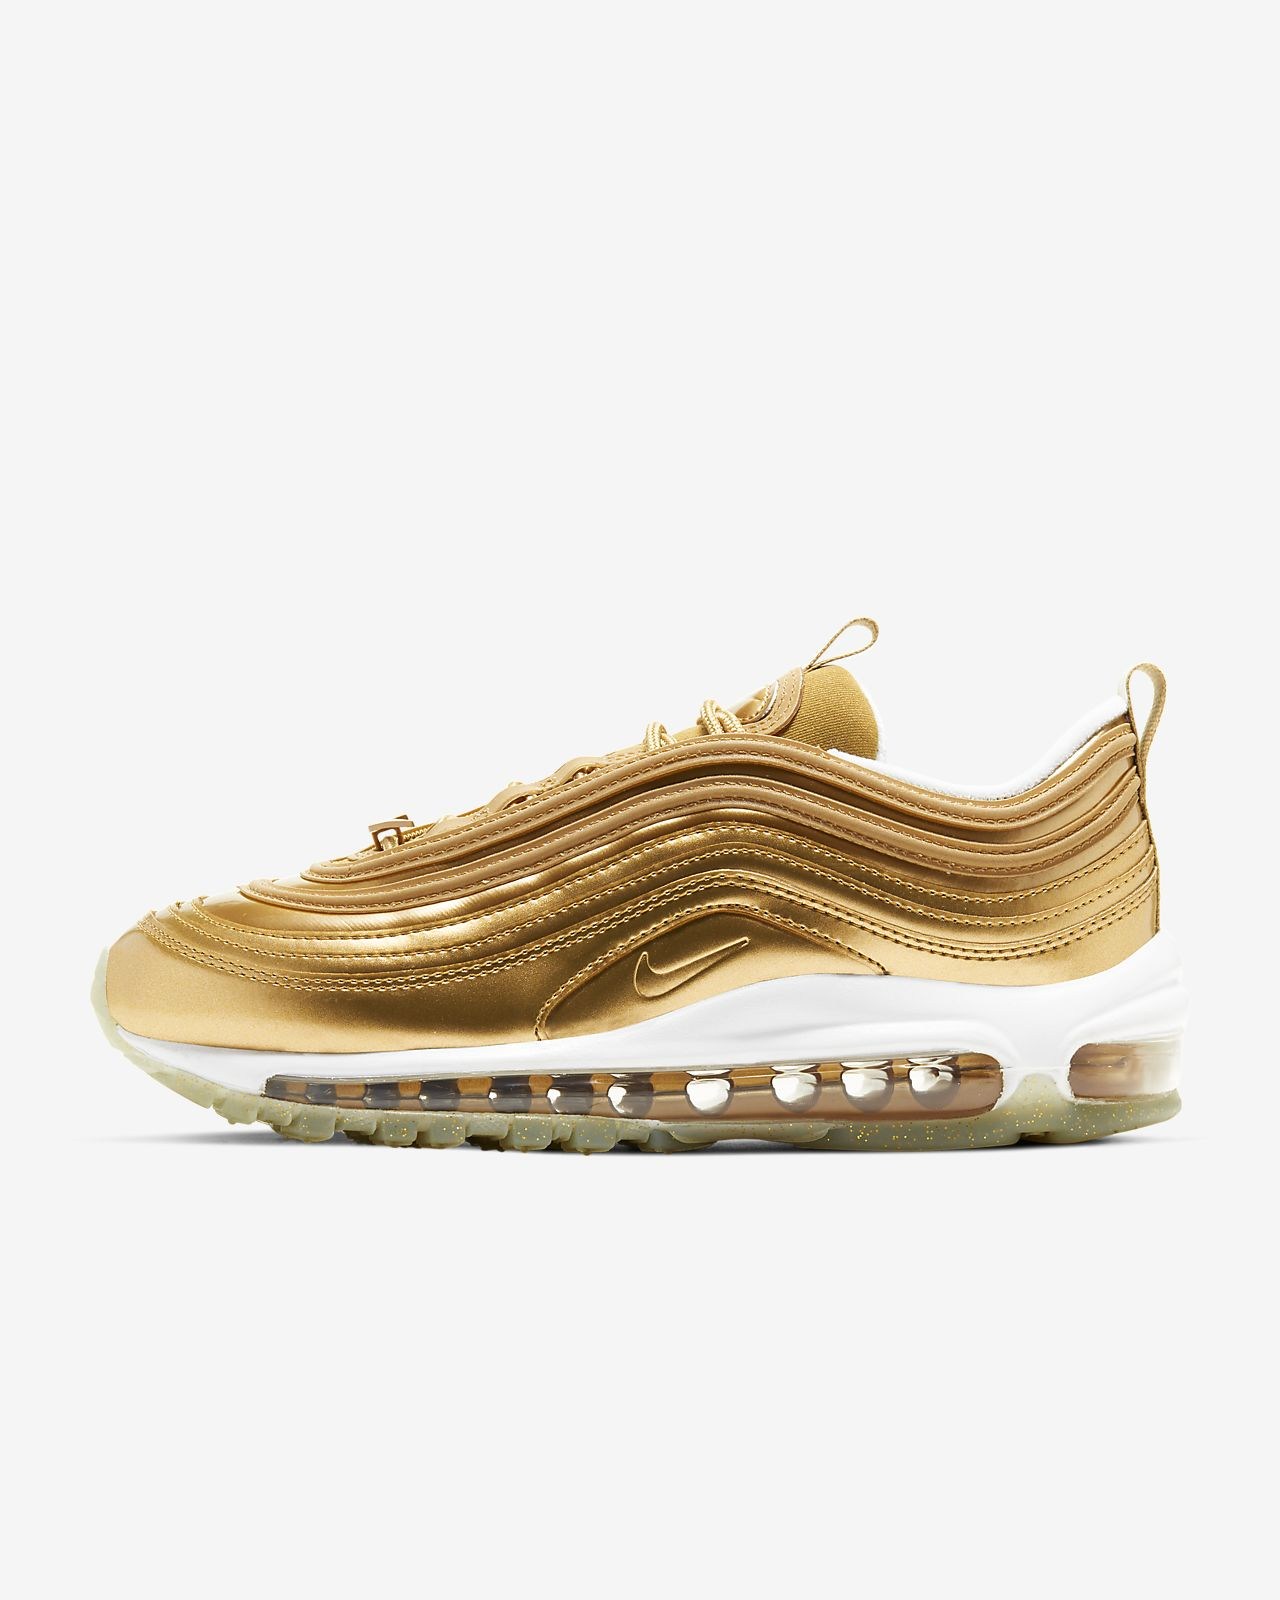 Air Max 97 LX Women's Shoe